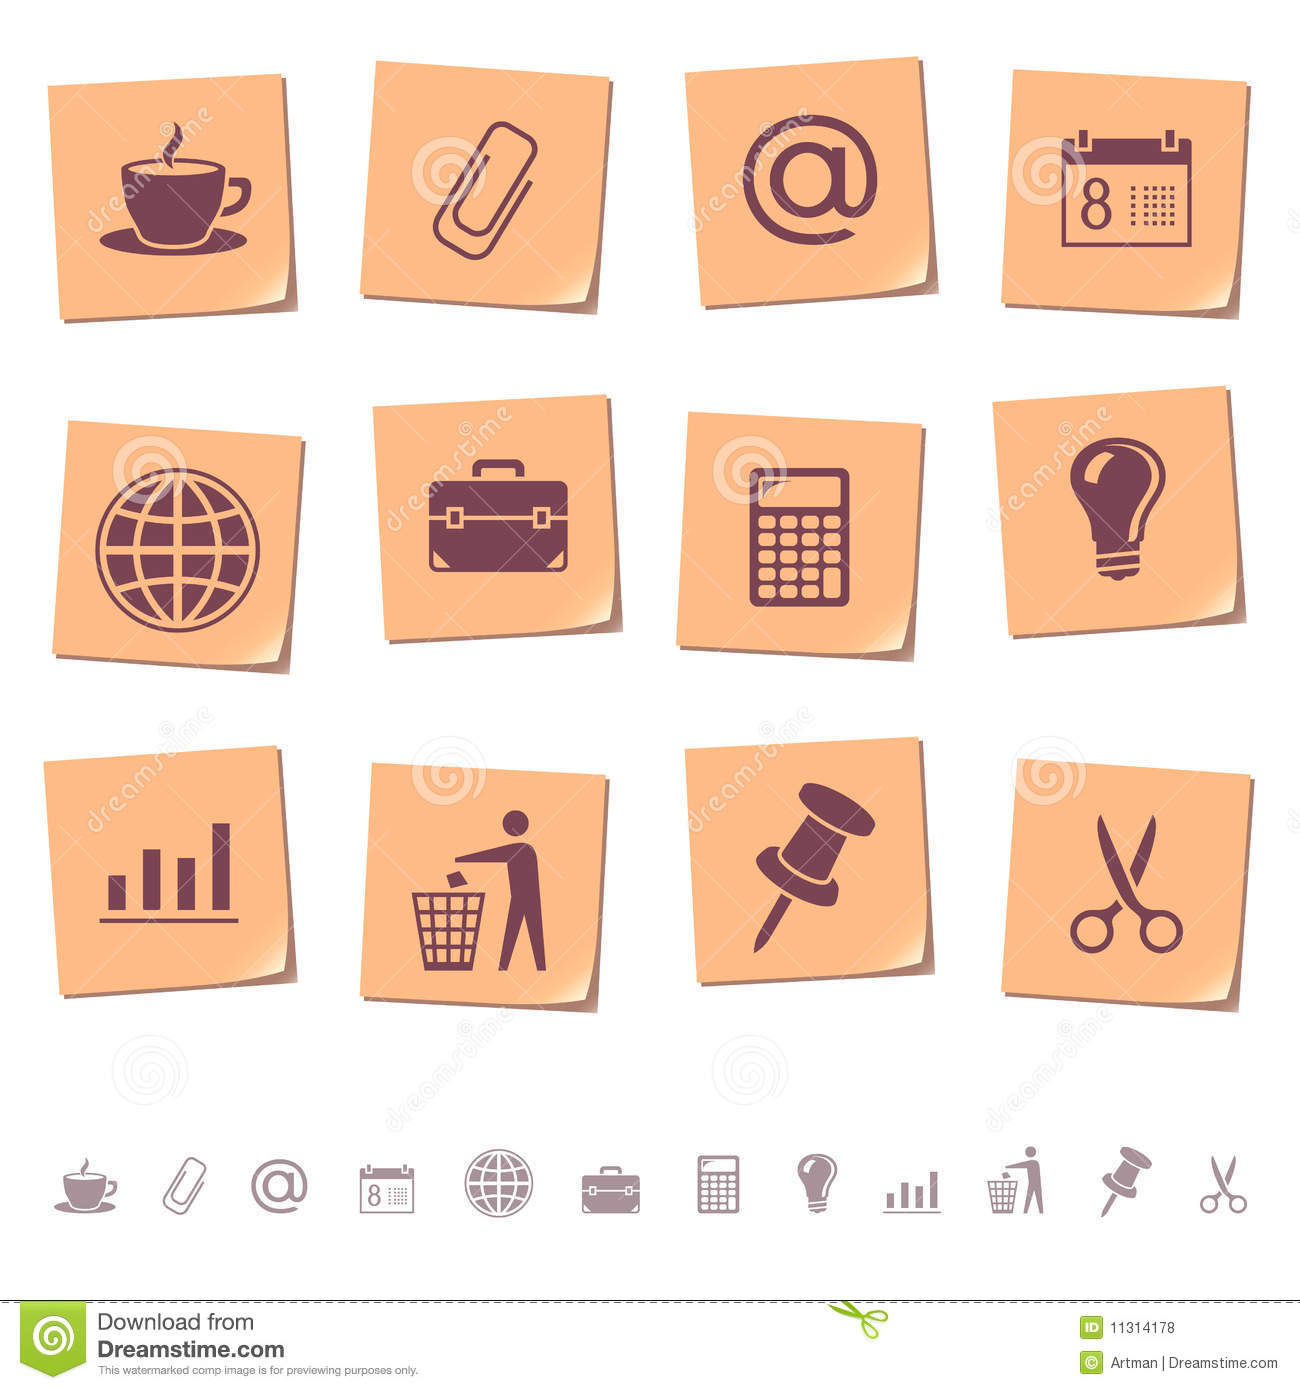 Web icons on memo notes 2